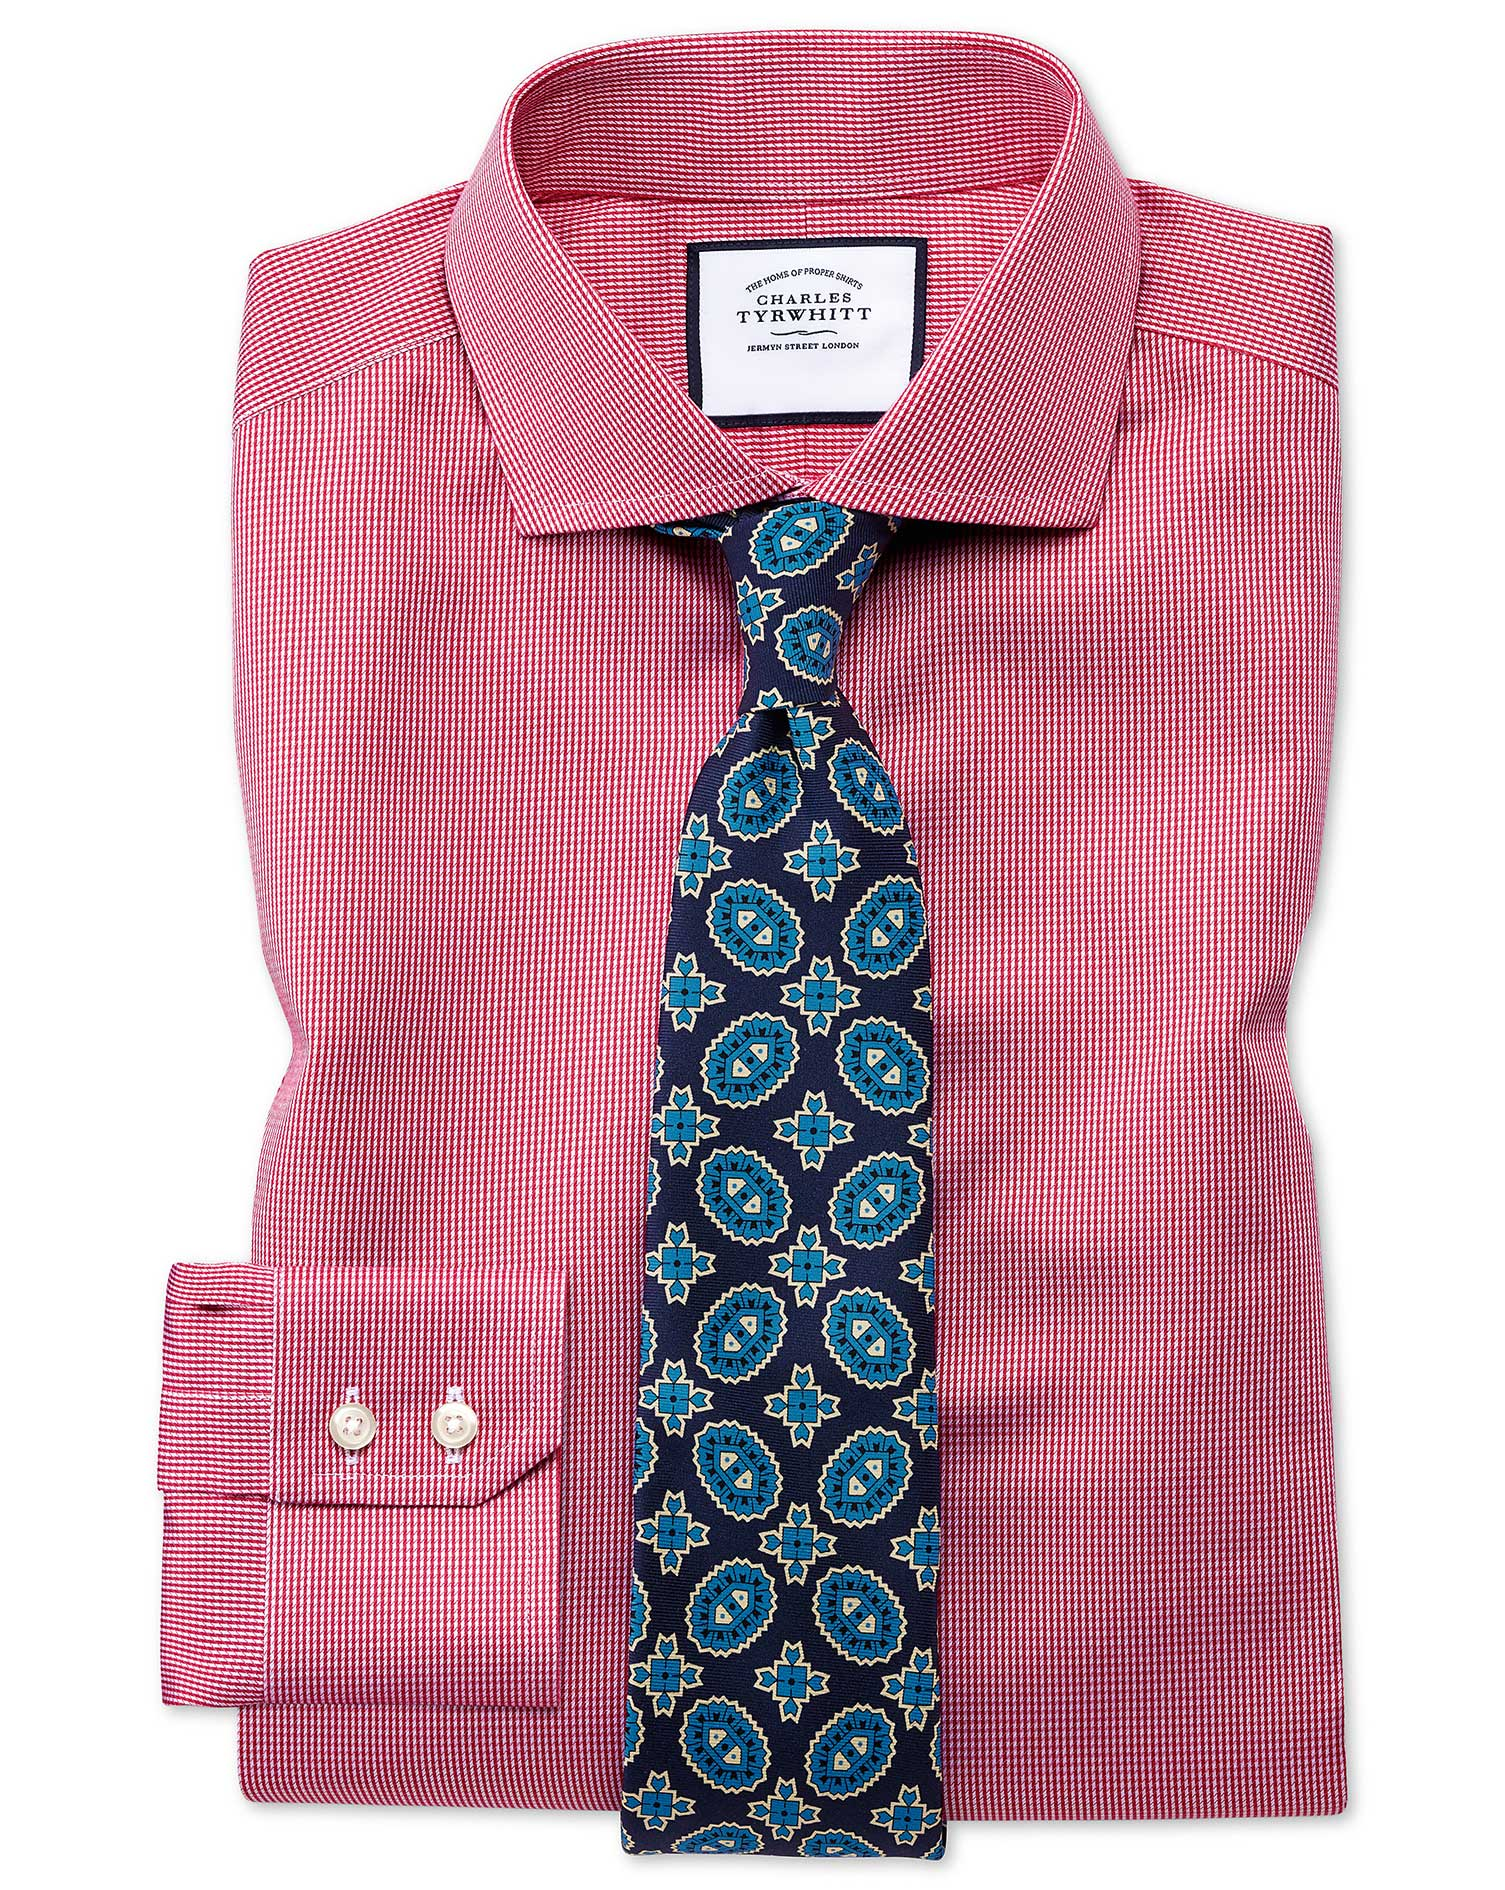 Slim Fit Cutaway Collar Non-Iron Puppytooth Bright Pink Cotton Formal Shirt Single Cuff Size 18/37 b